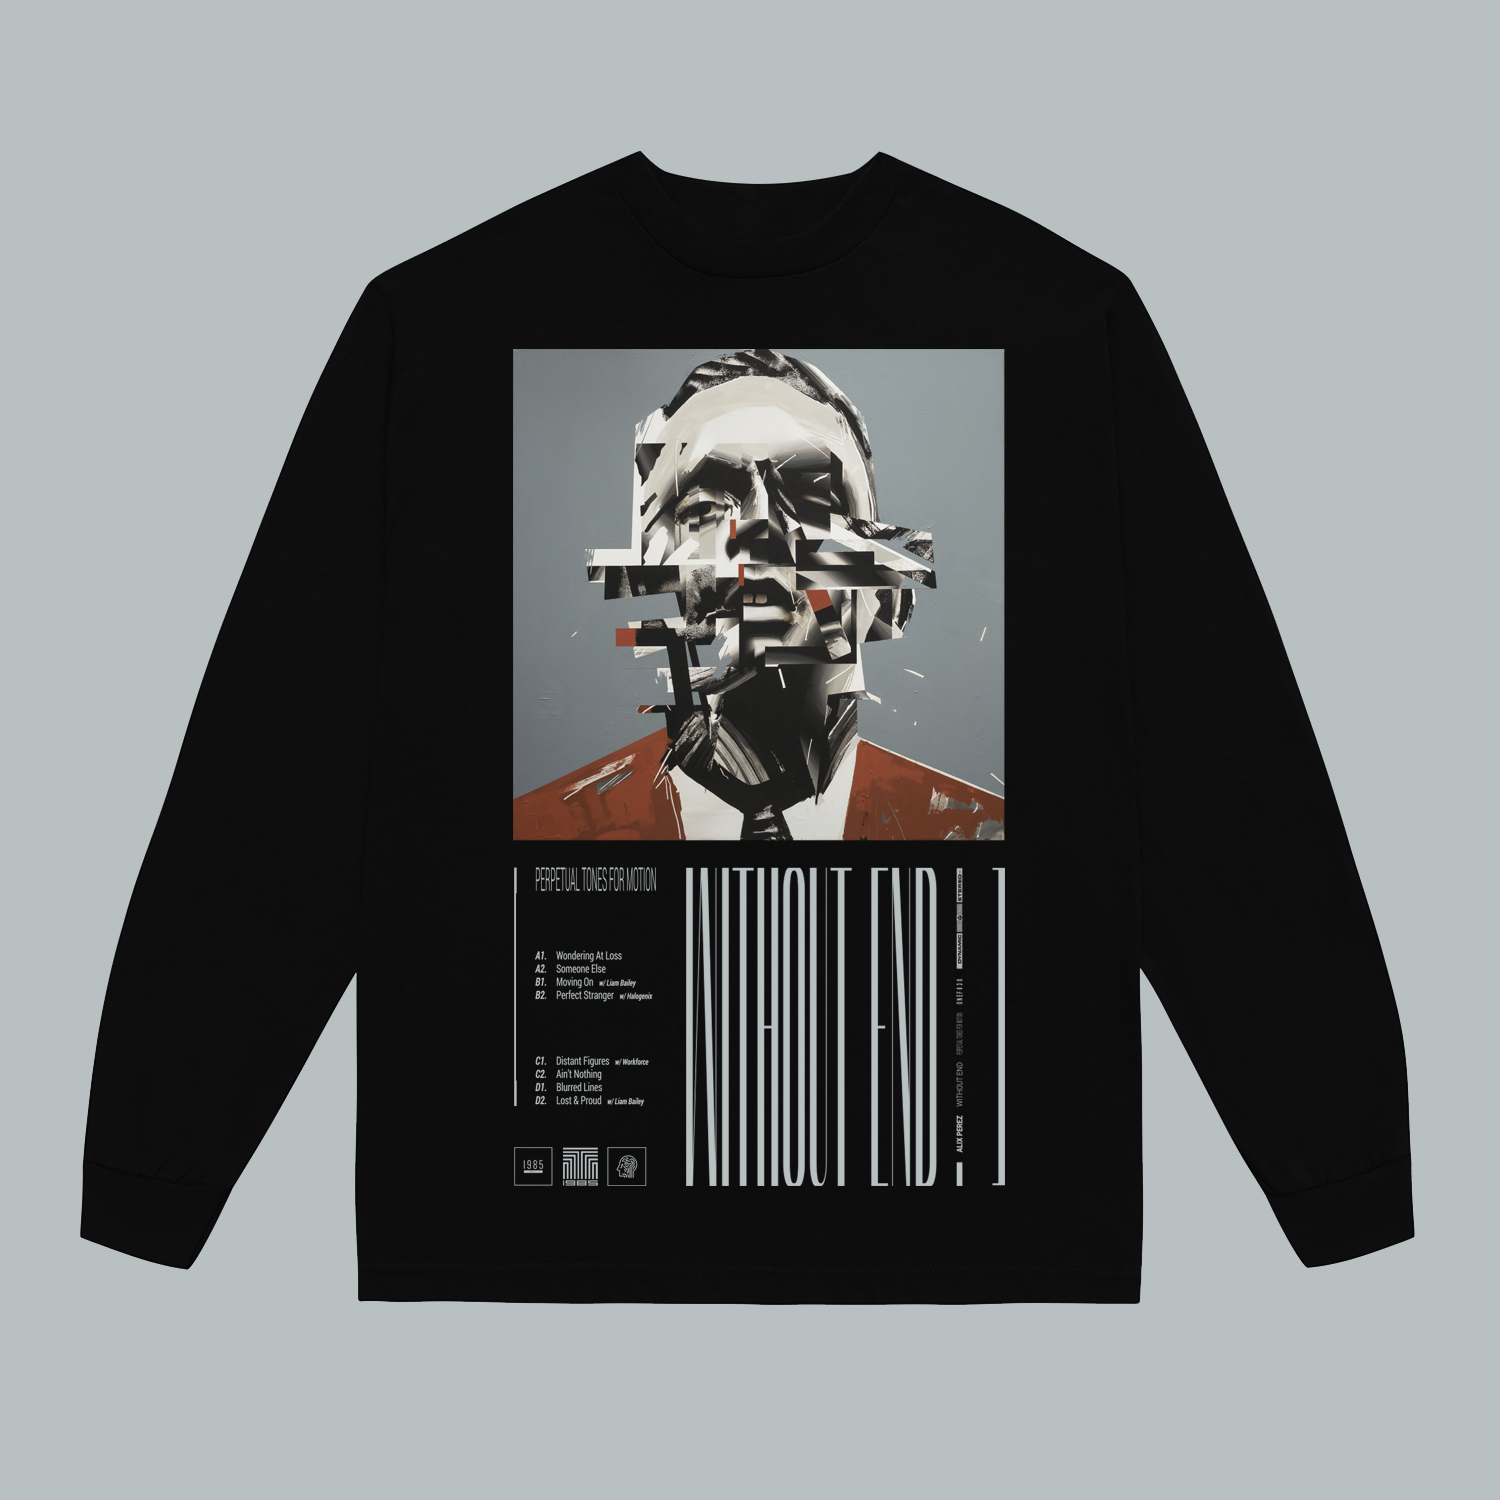 Without End Tee L/S Tee (Alix Perez)